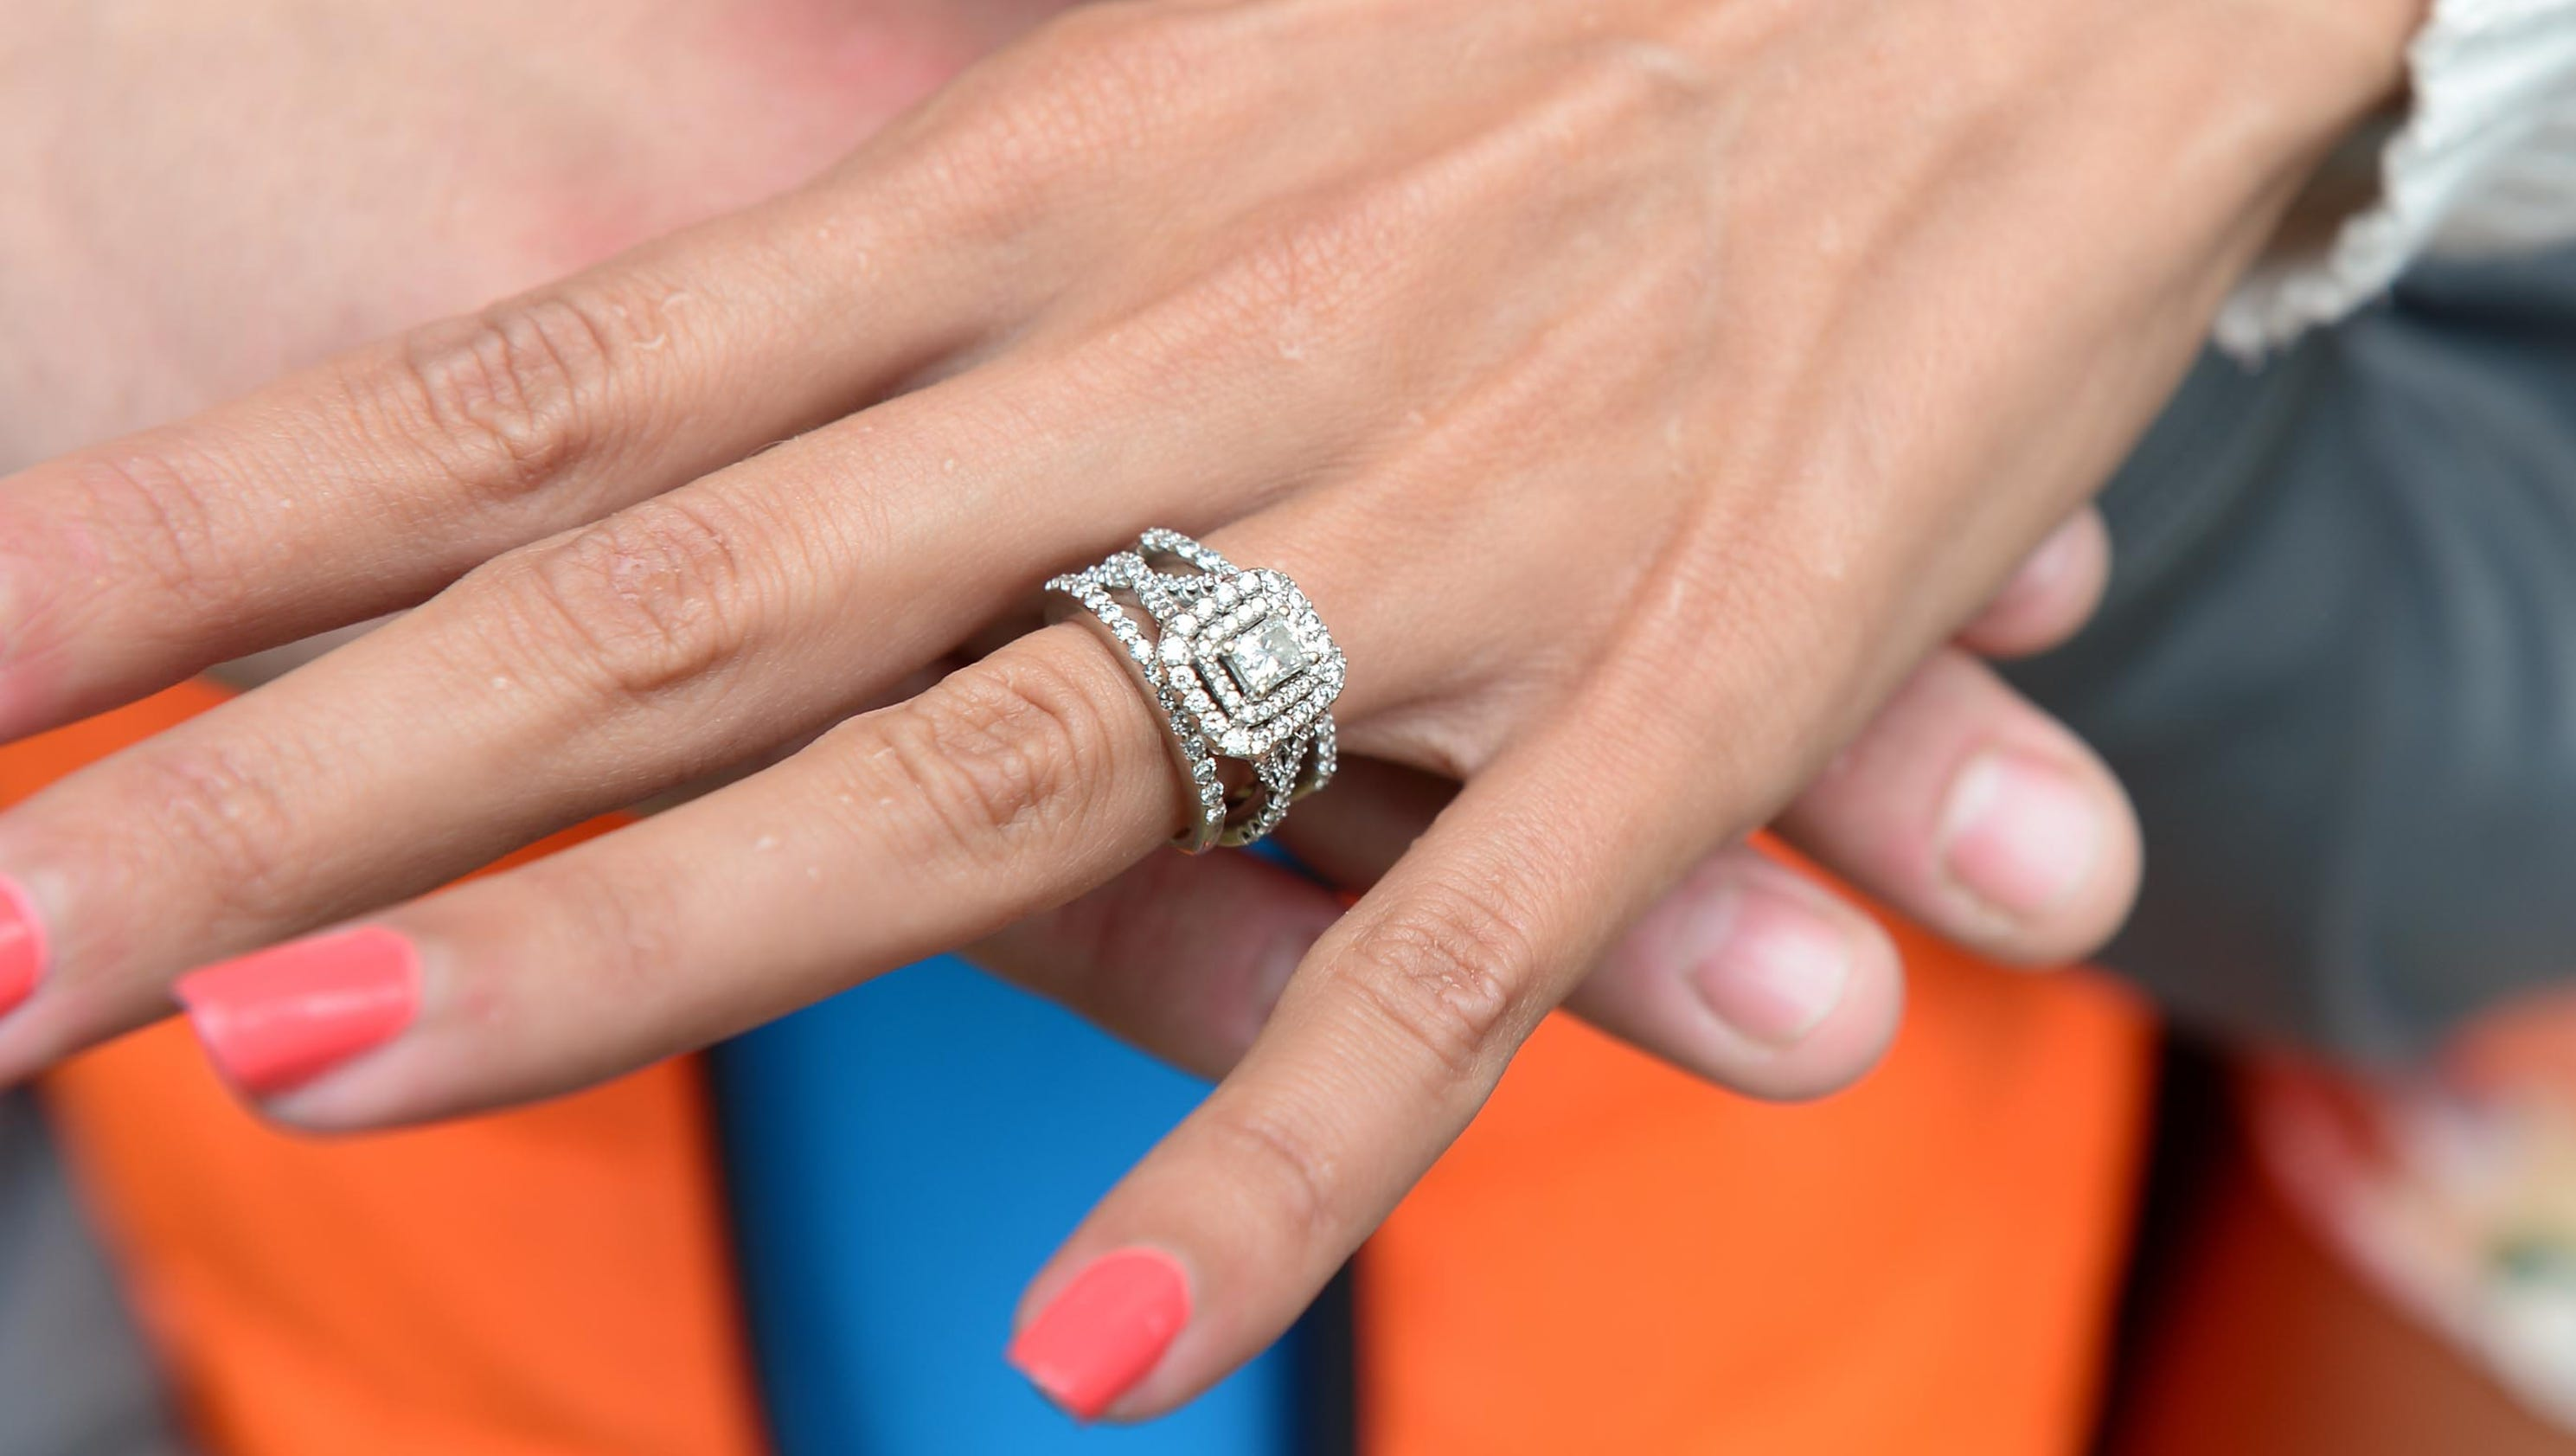 How To Find A Lost Wedding Ring